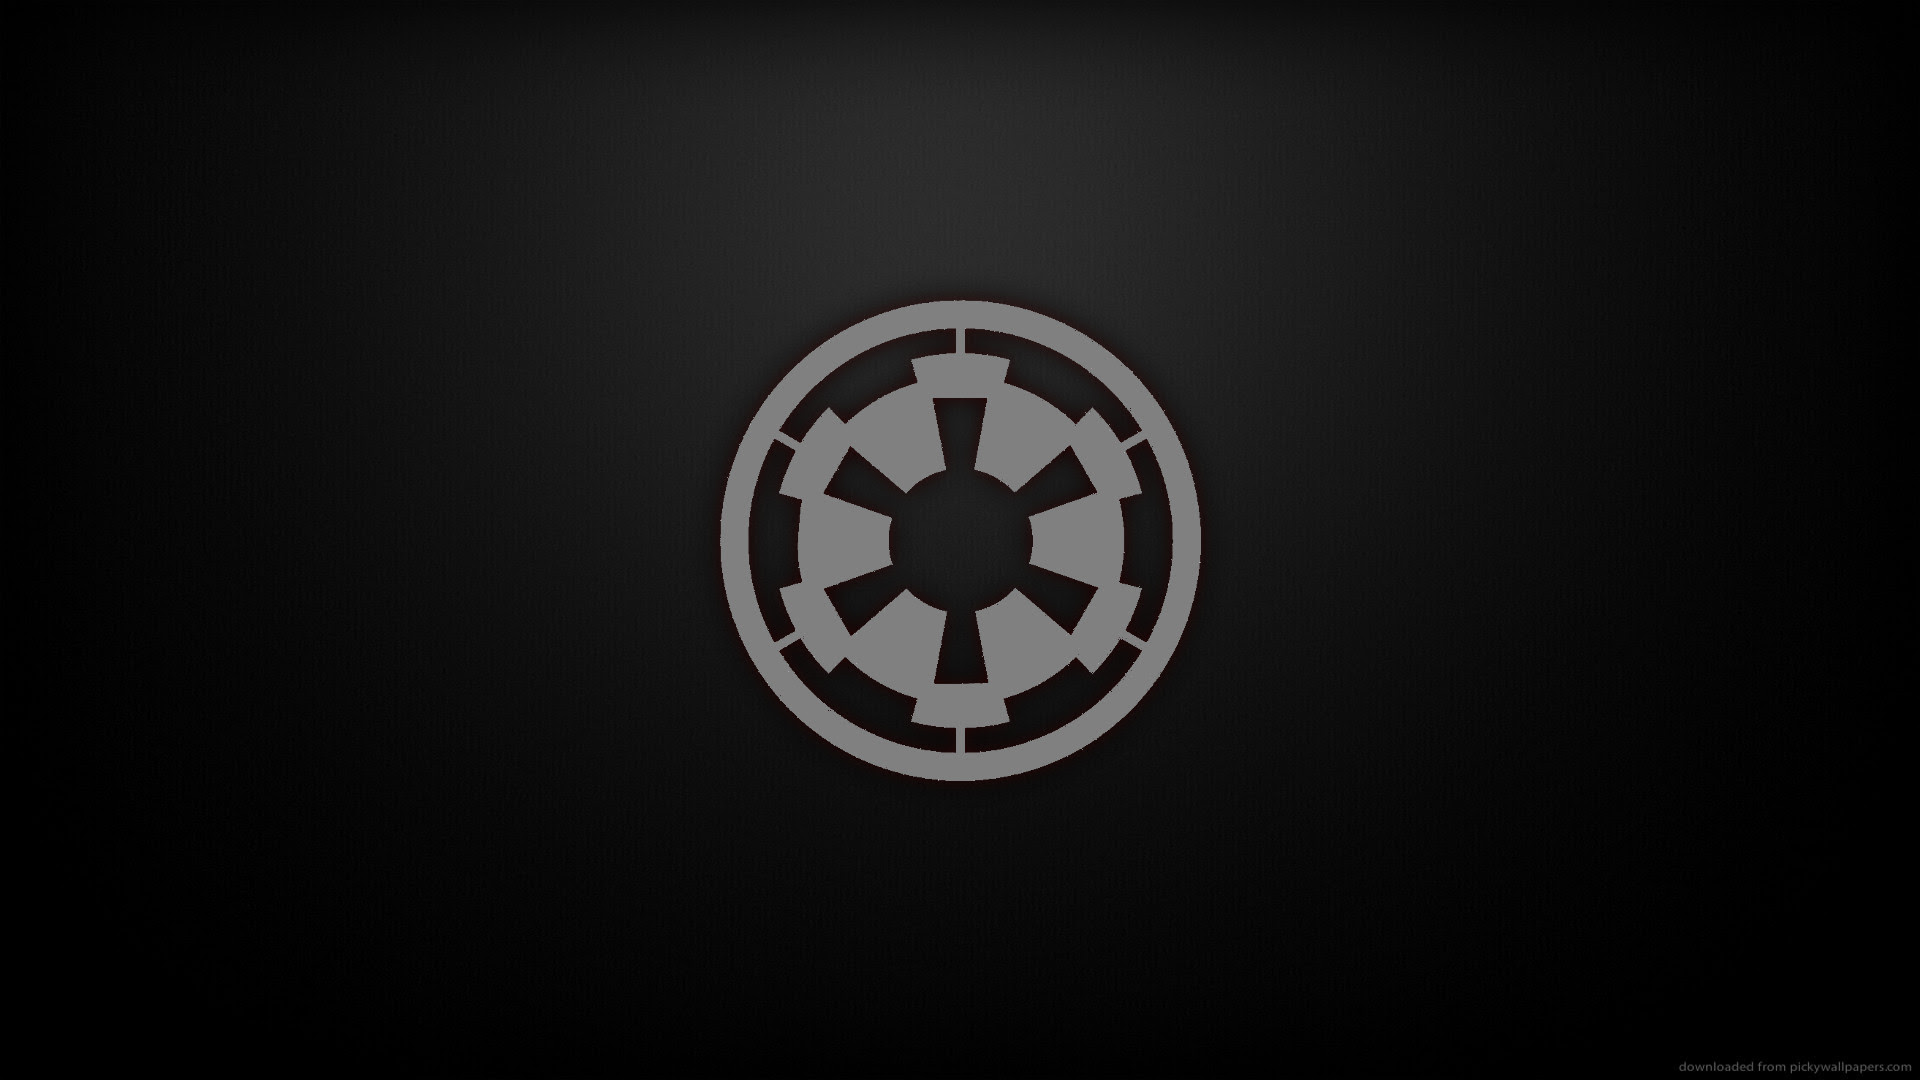 Star Wars Empire Logo Wallpaper 67 Images